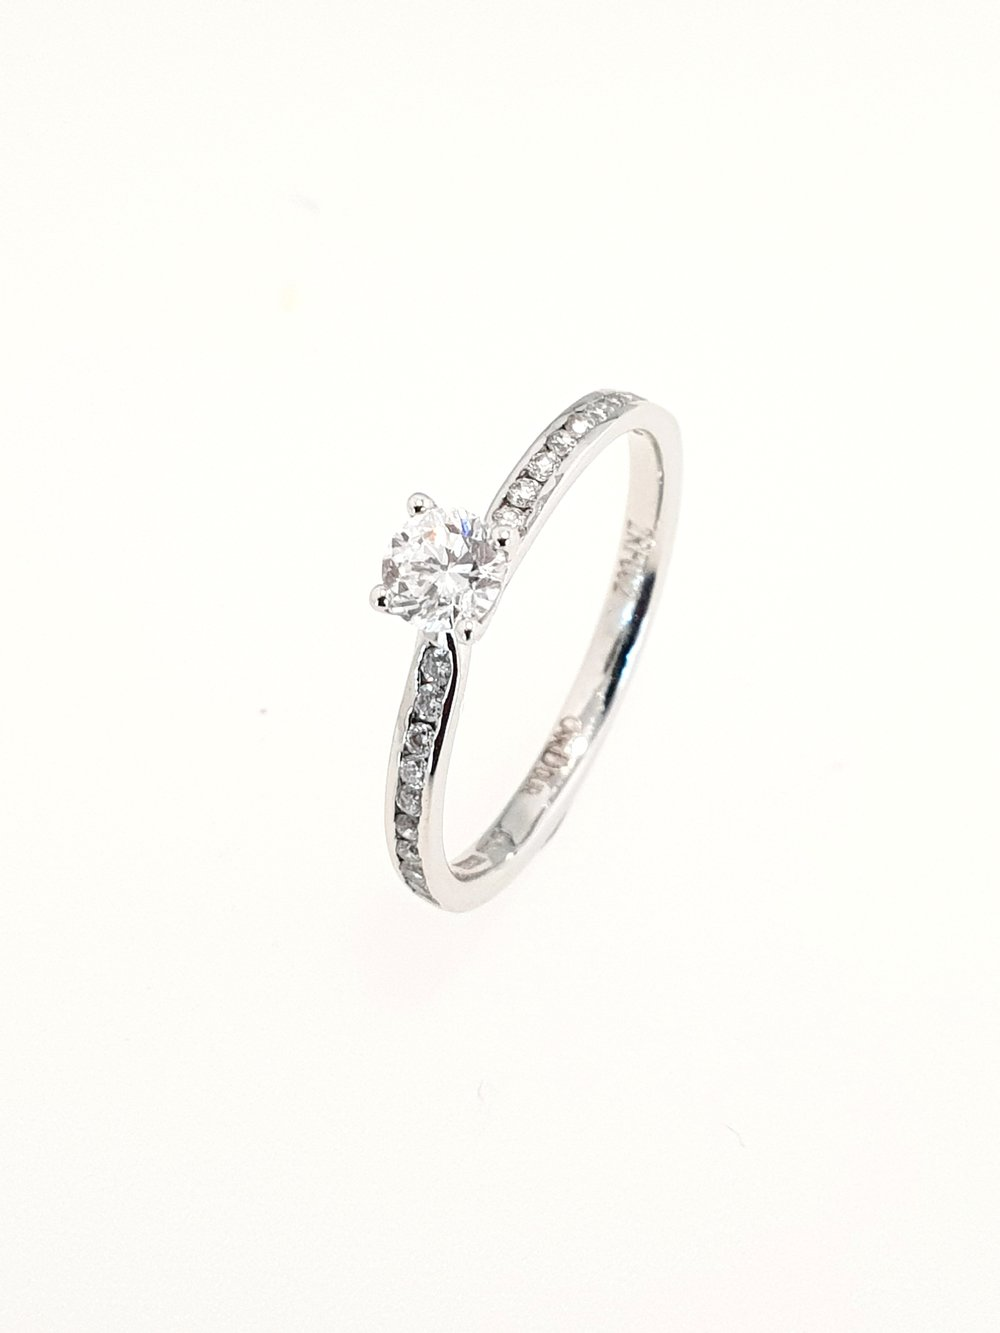 18ct White Gold Diamond Ring  TCW: .40ct, D, VS2 (1 x 25ct, 20 x .15ct)  Stock Code: N8633  £1400